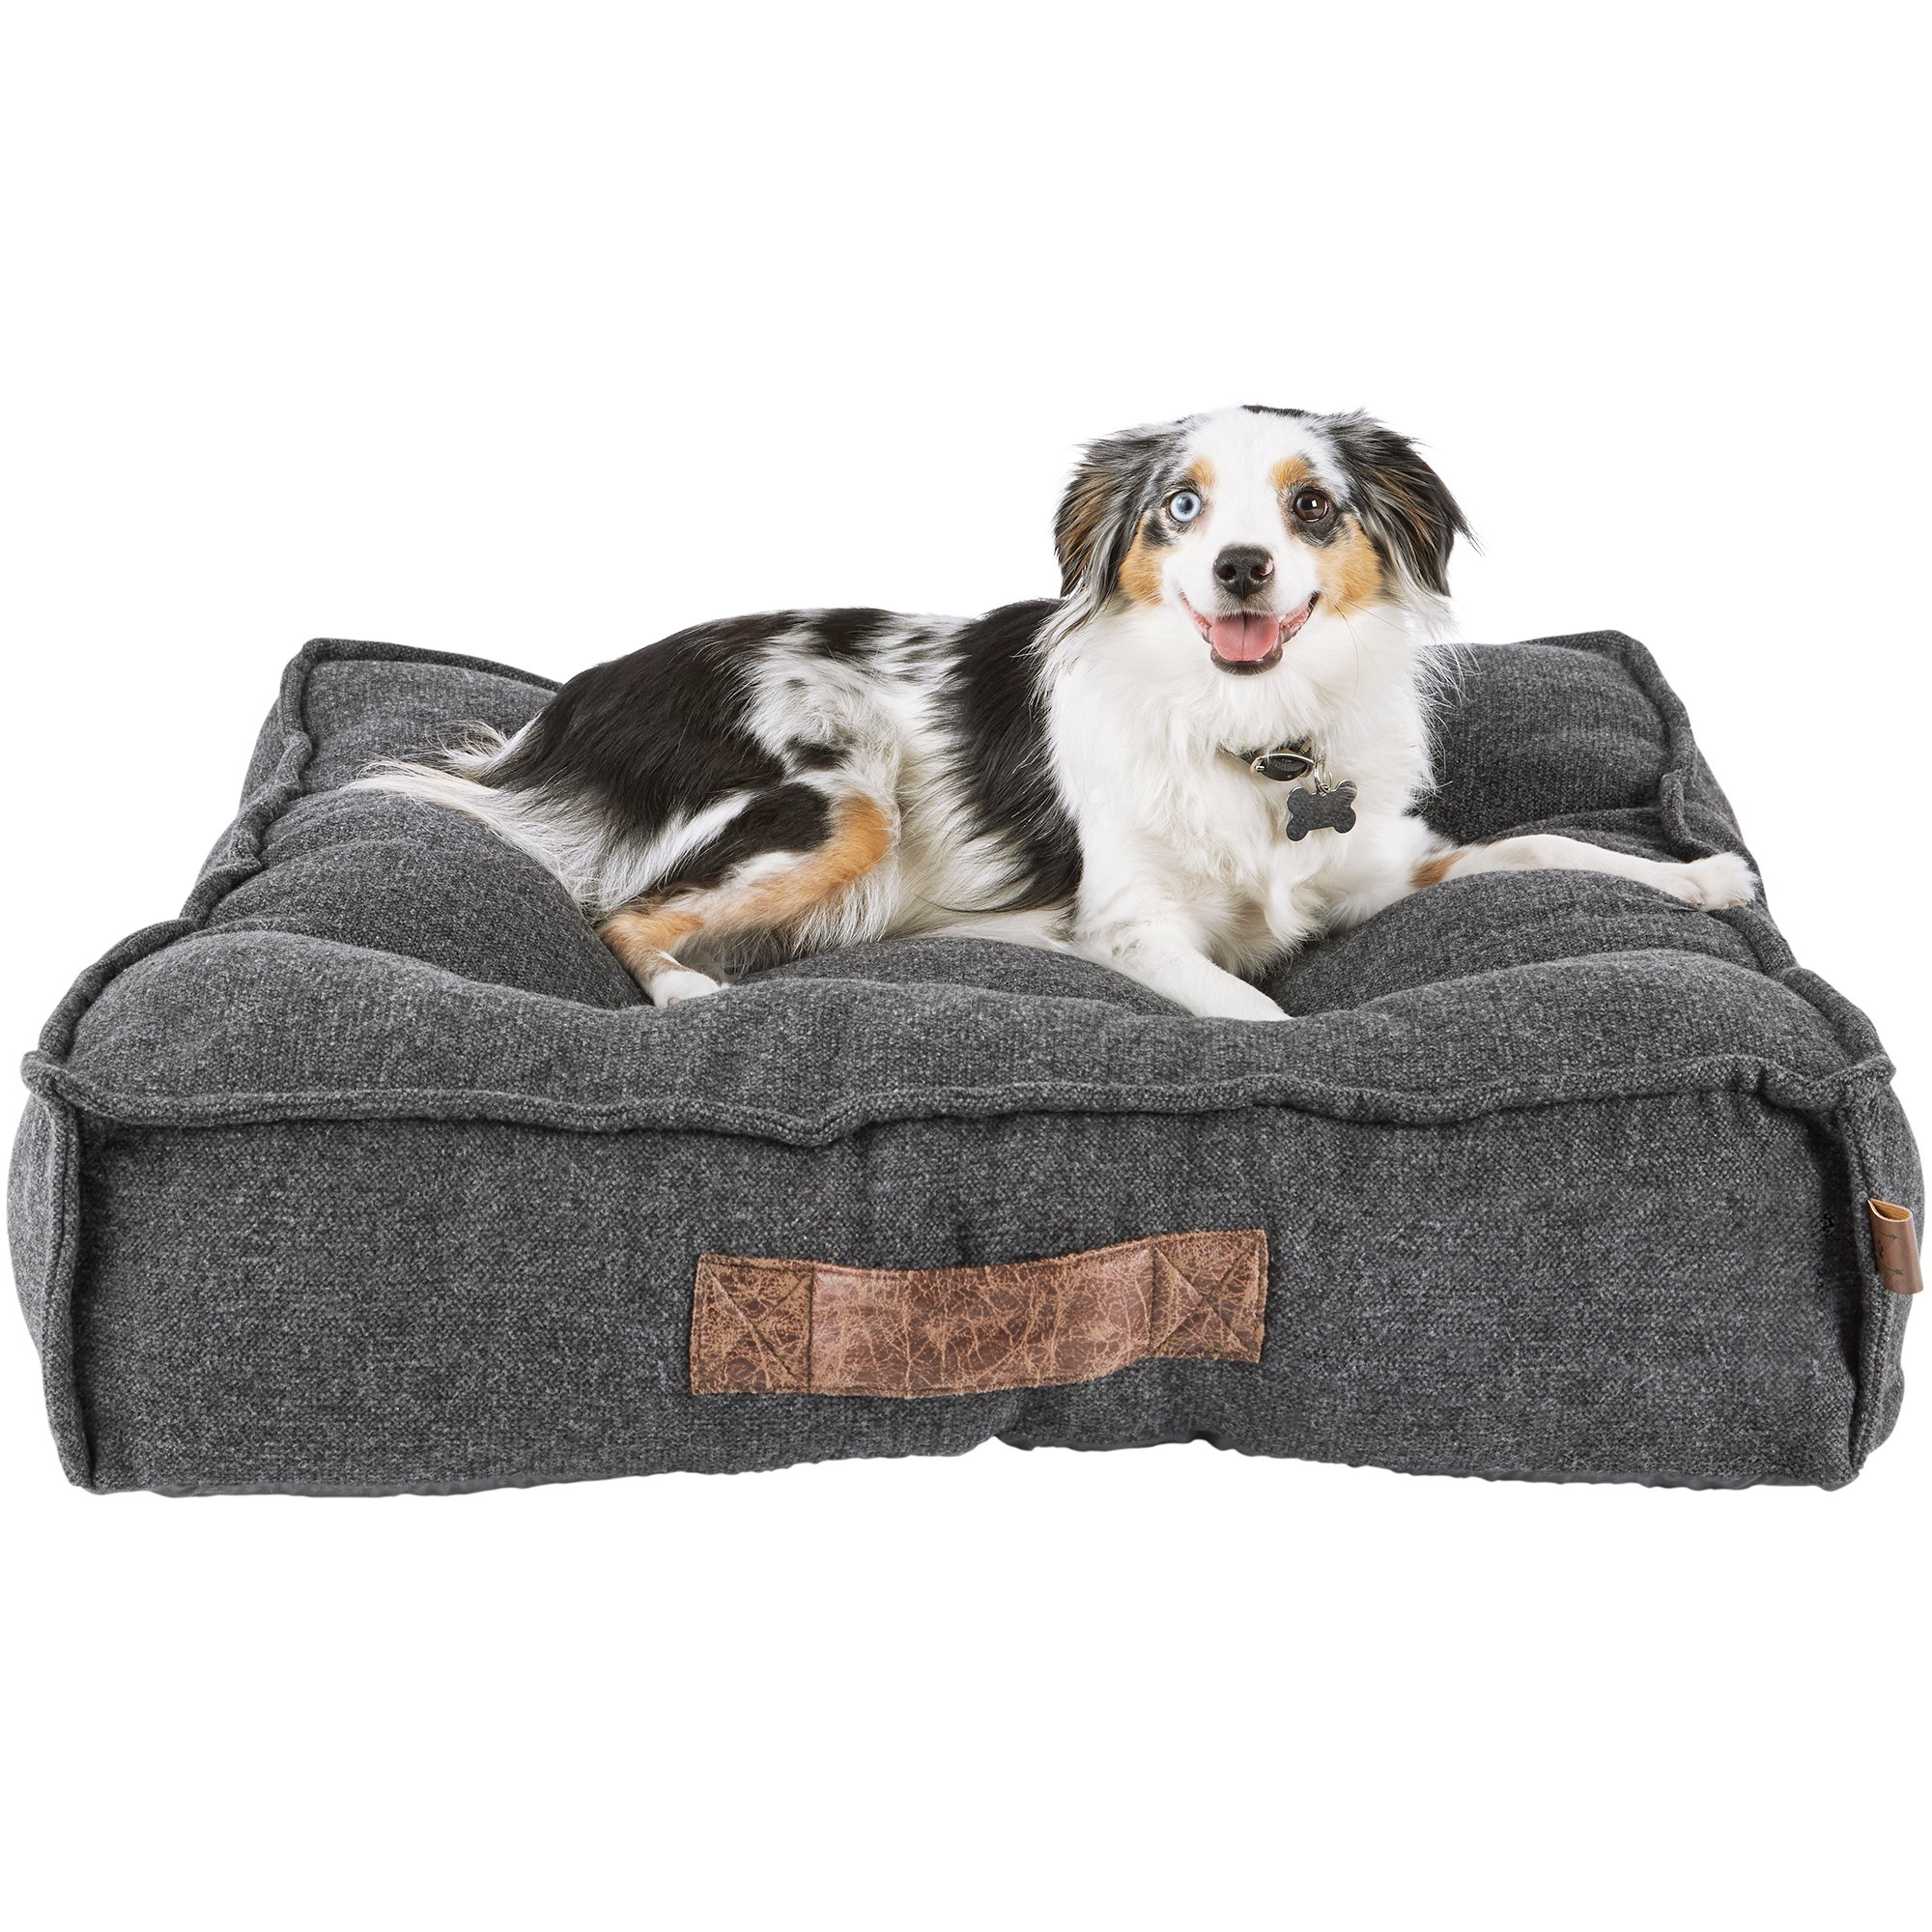 Dog Beds Pet Harmony Grey Lounger Memory Foam Dog Bed Petco